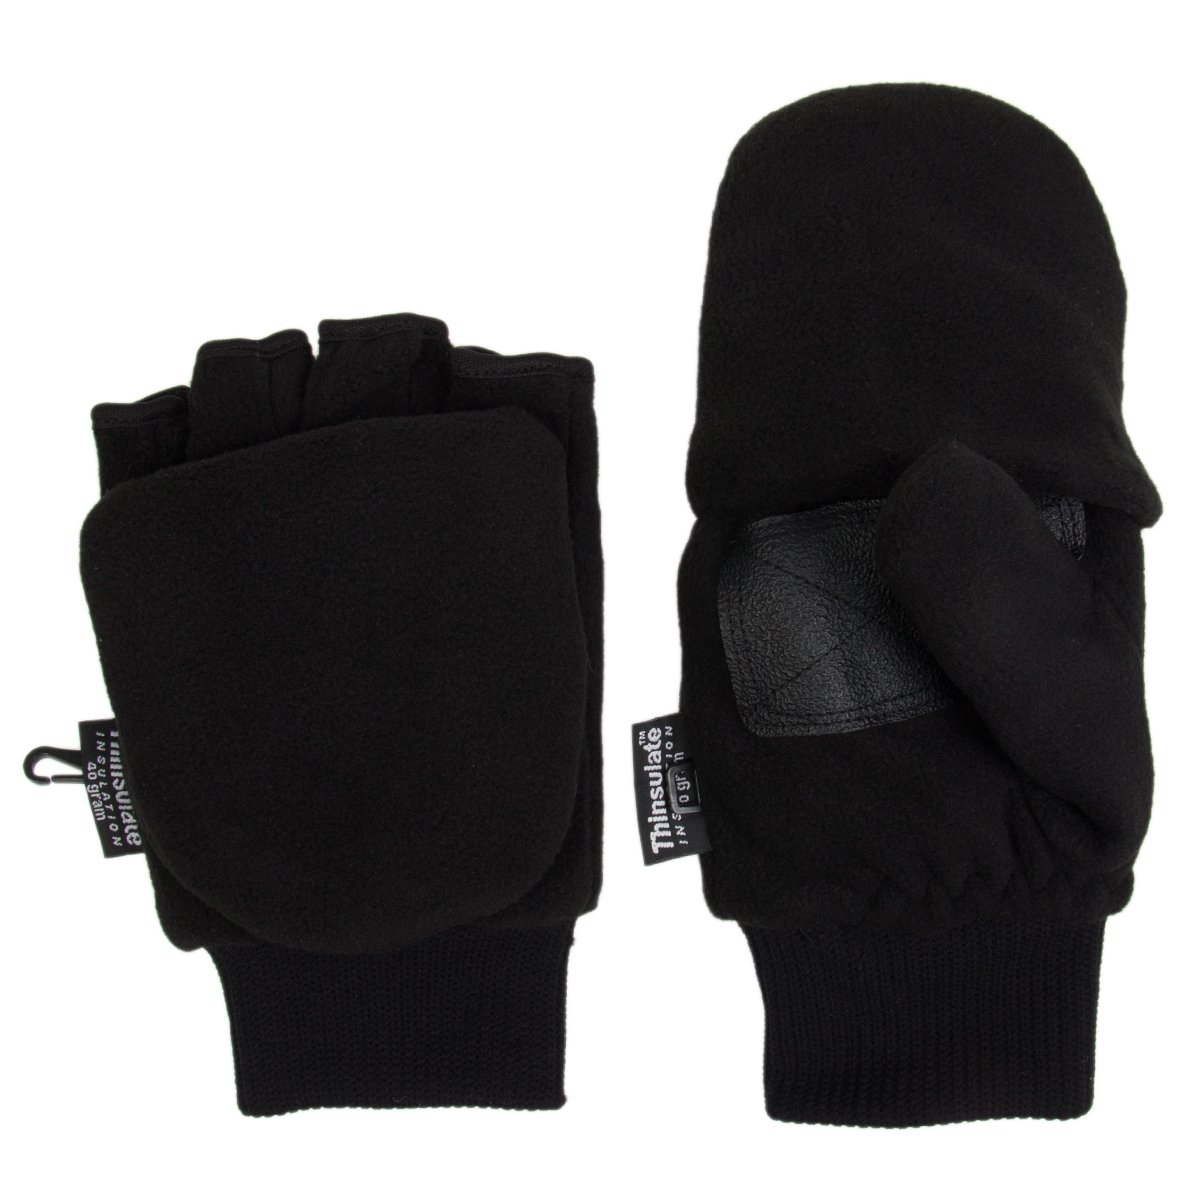 Thinsulate 3M Fleece Pop Top Convertible Fingerless Gloves Mittens Women Kids